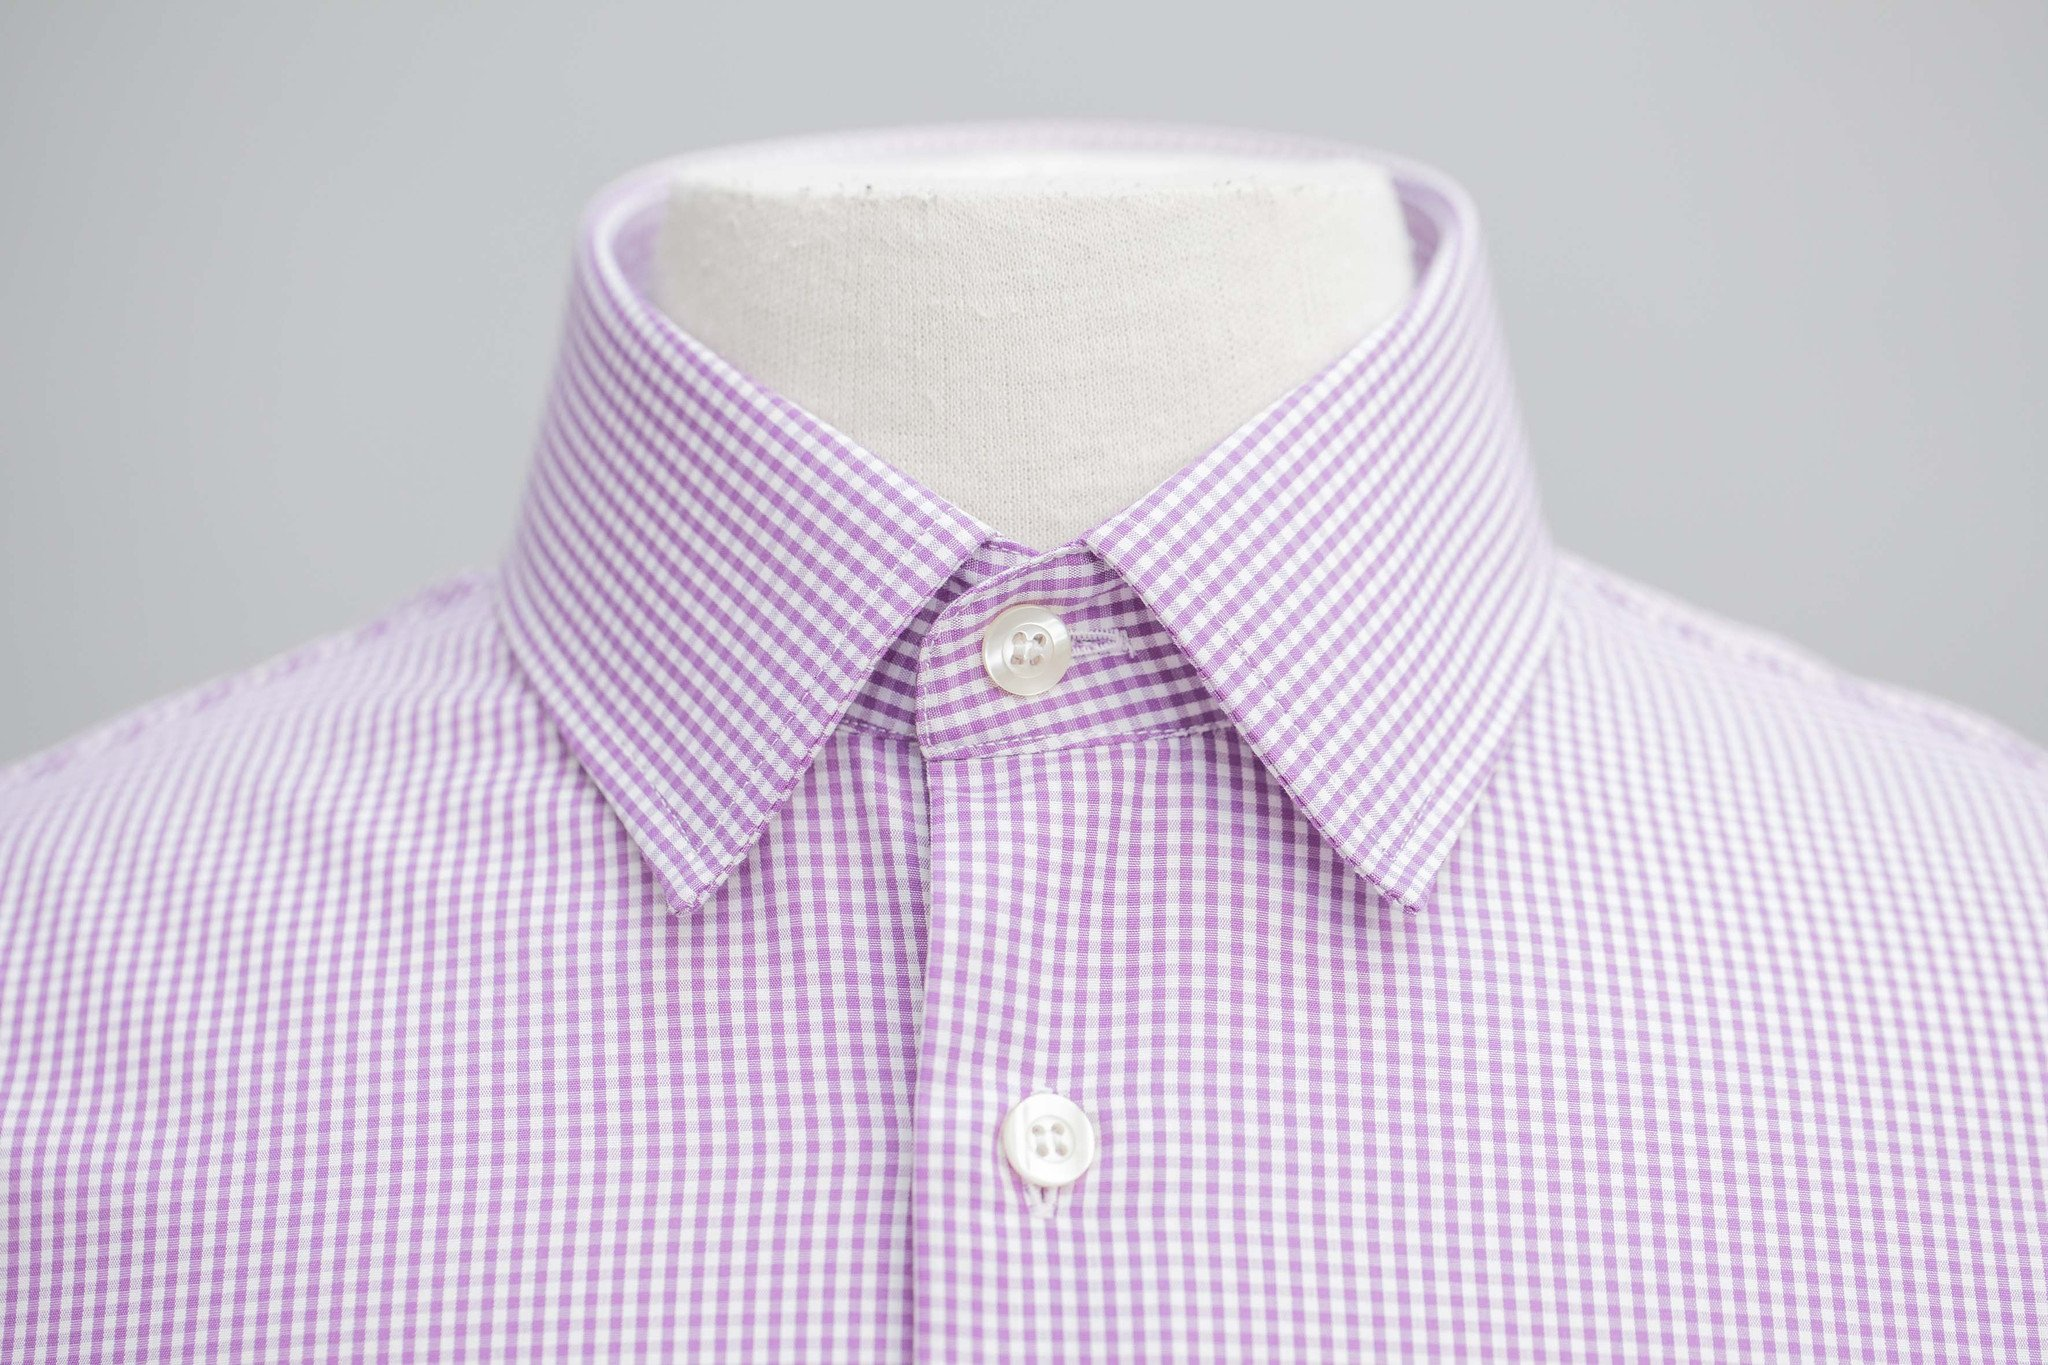 Smyth & Gibson Non-Iron Gingham Check Slim Fit Shirt in Purple